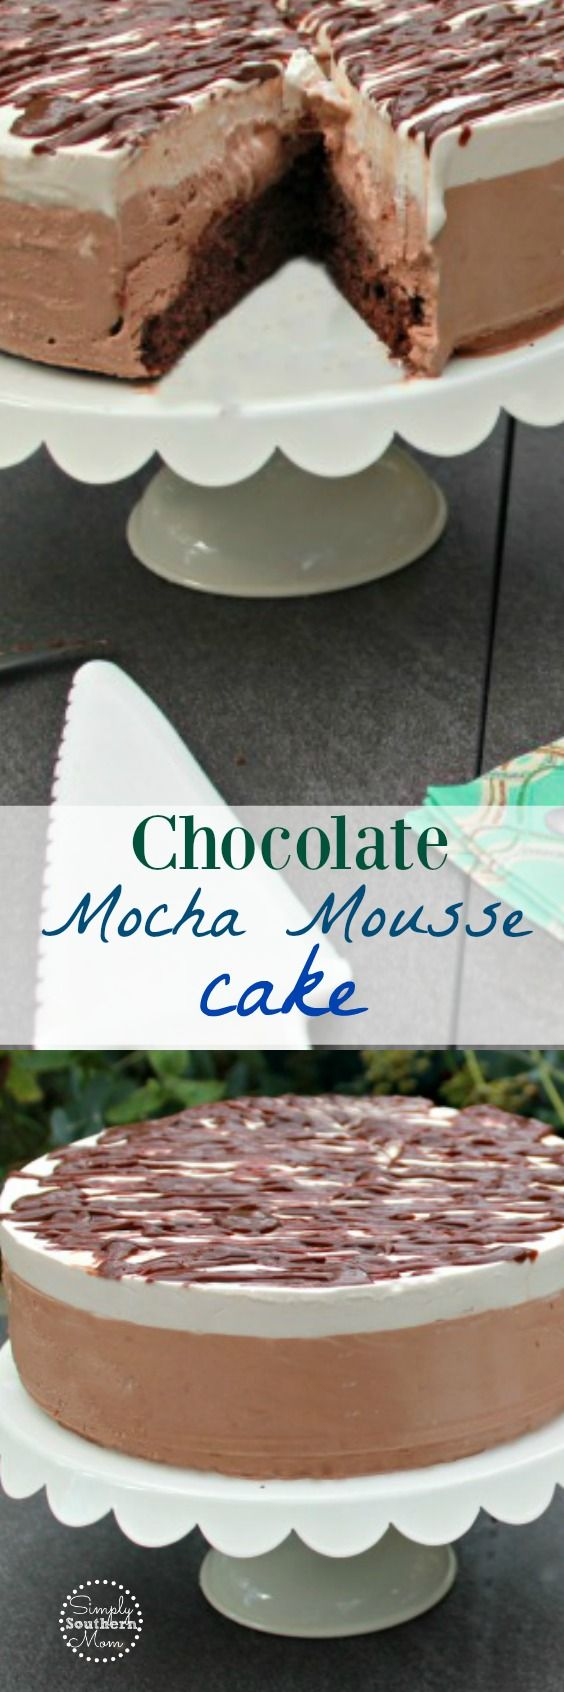 Chocolate Mocha Mousse Cake